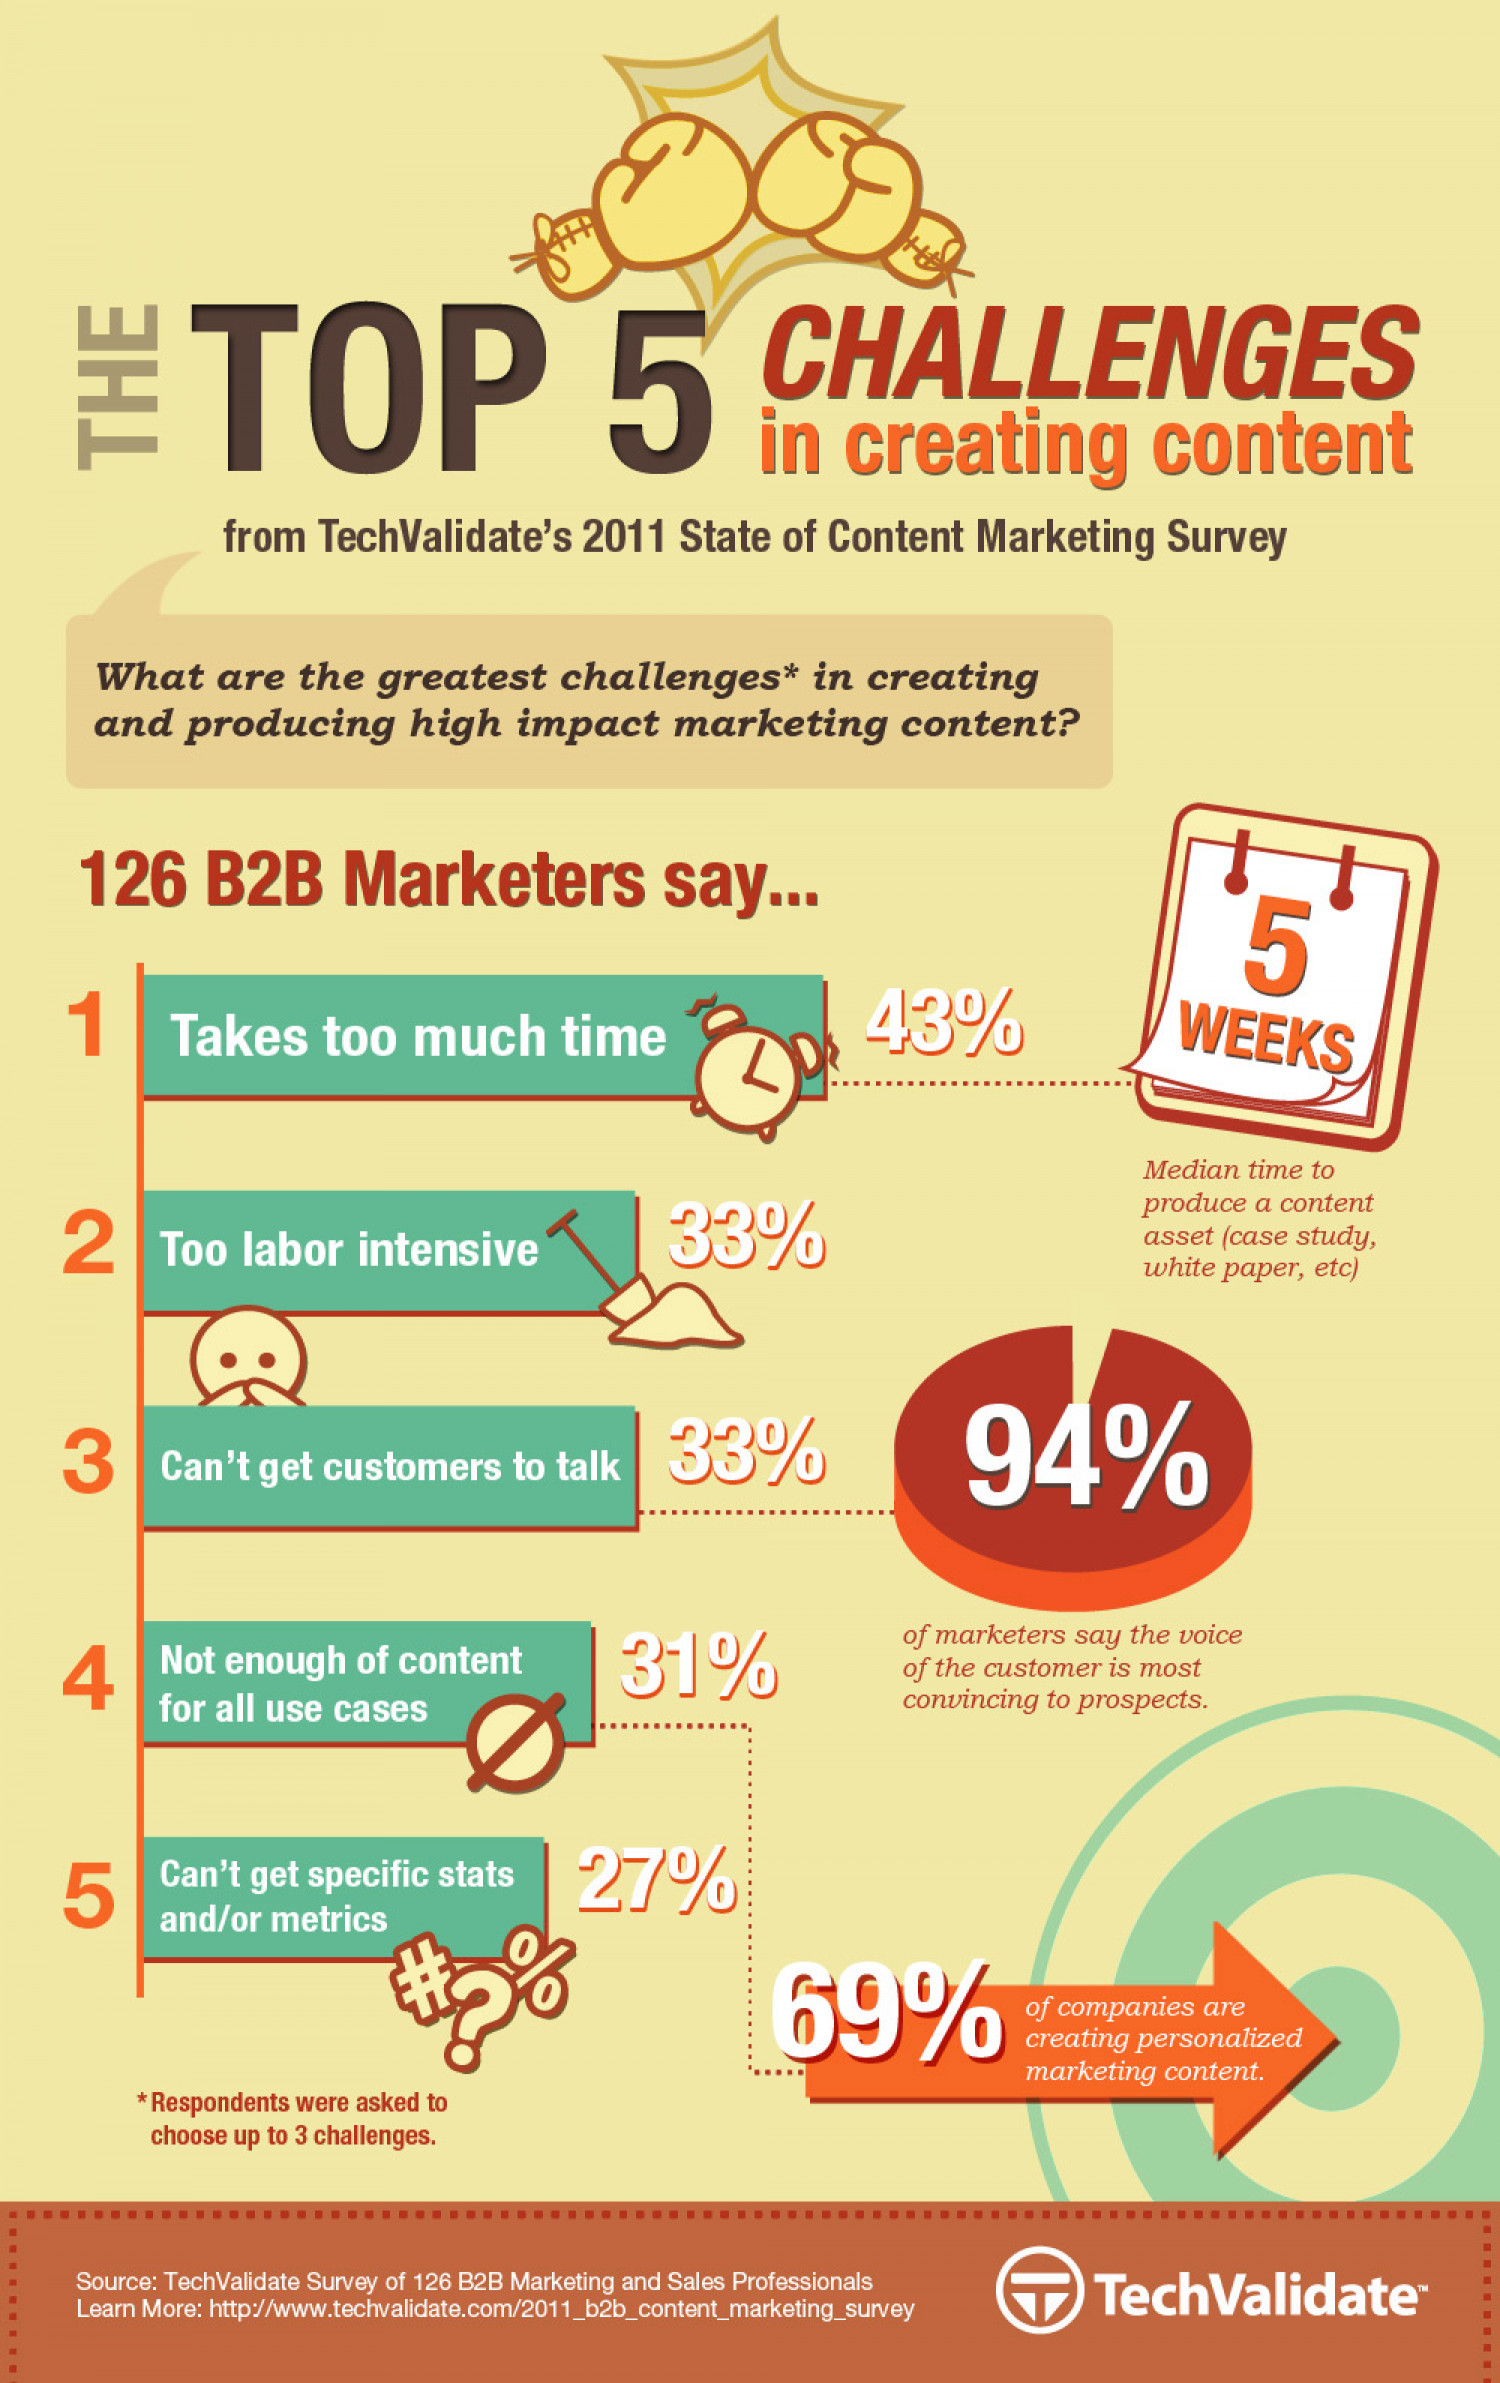 The Top 5 Challenges In Creating B2B Content Infographic